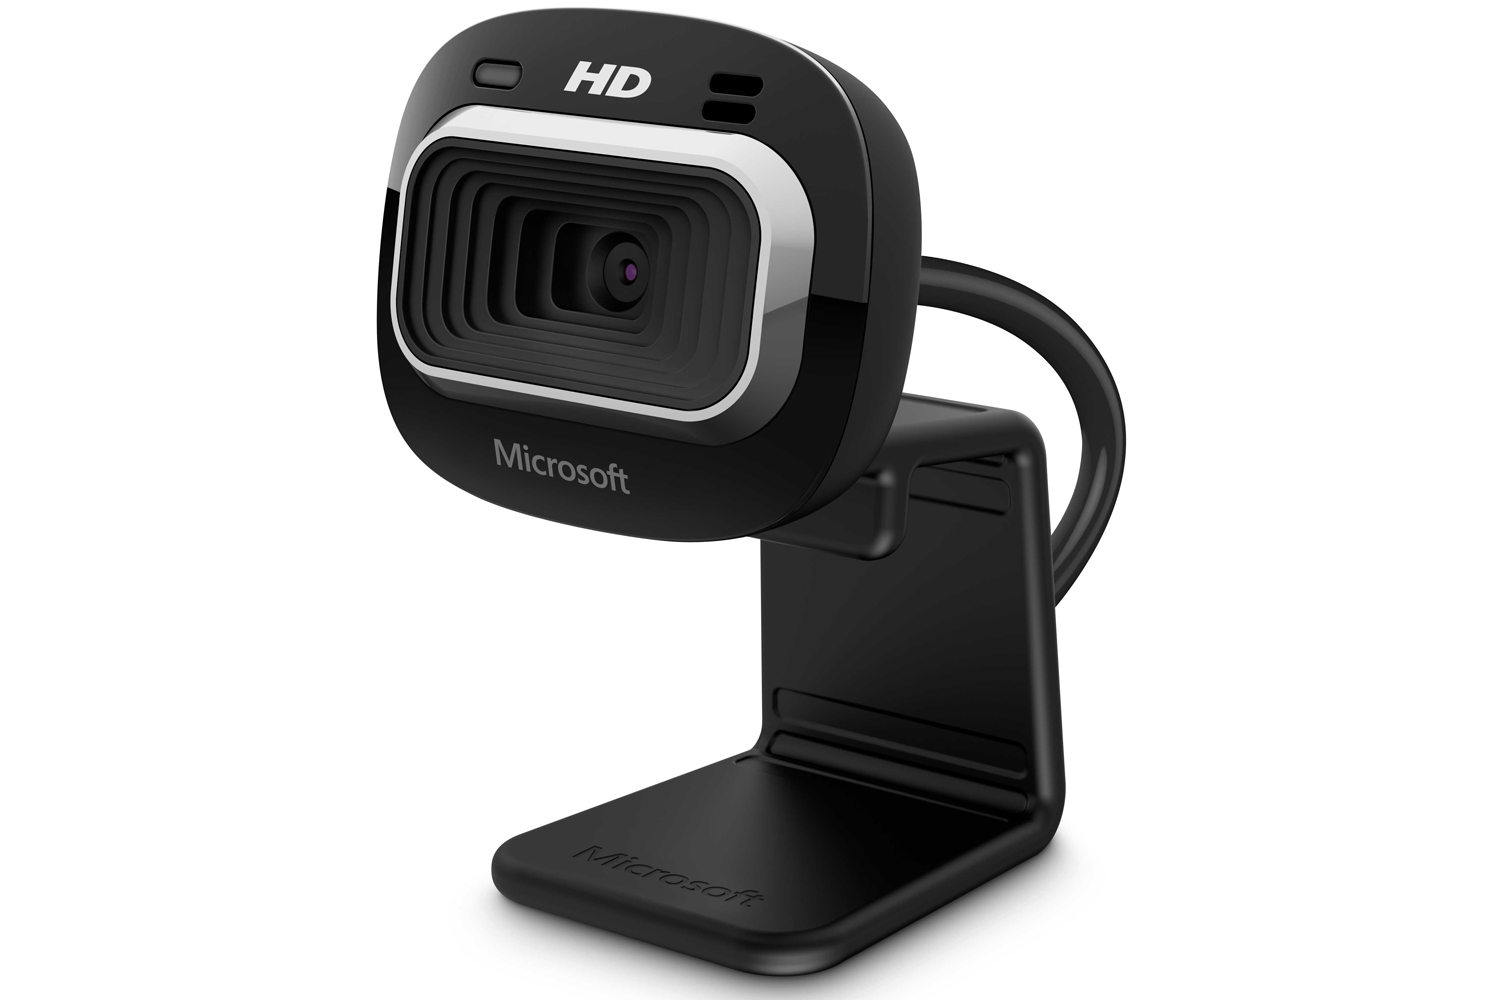 MS LIFECAM HD-3000 DRIVER FREE